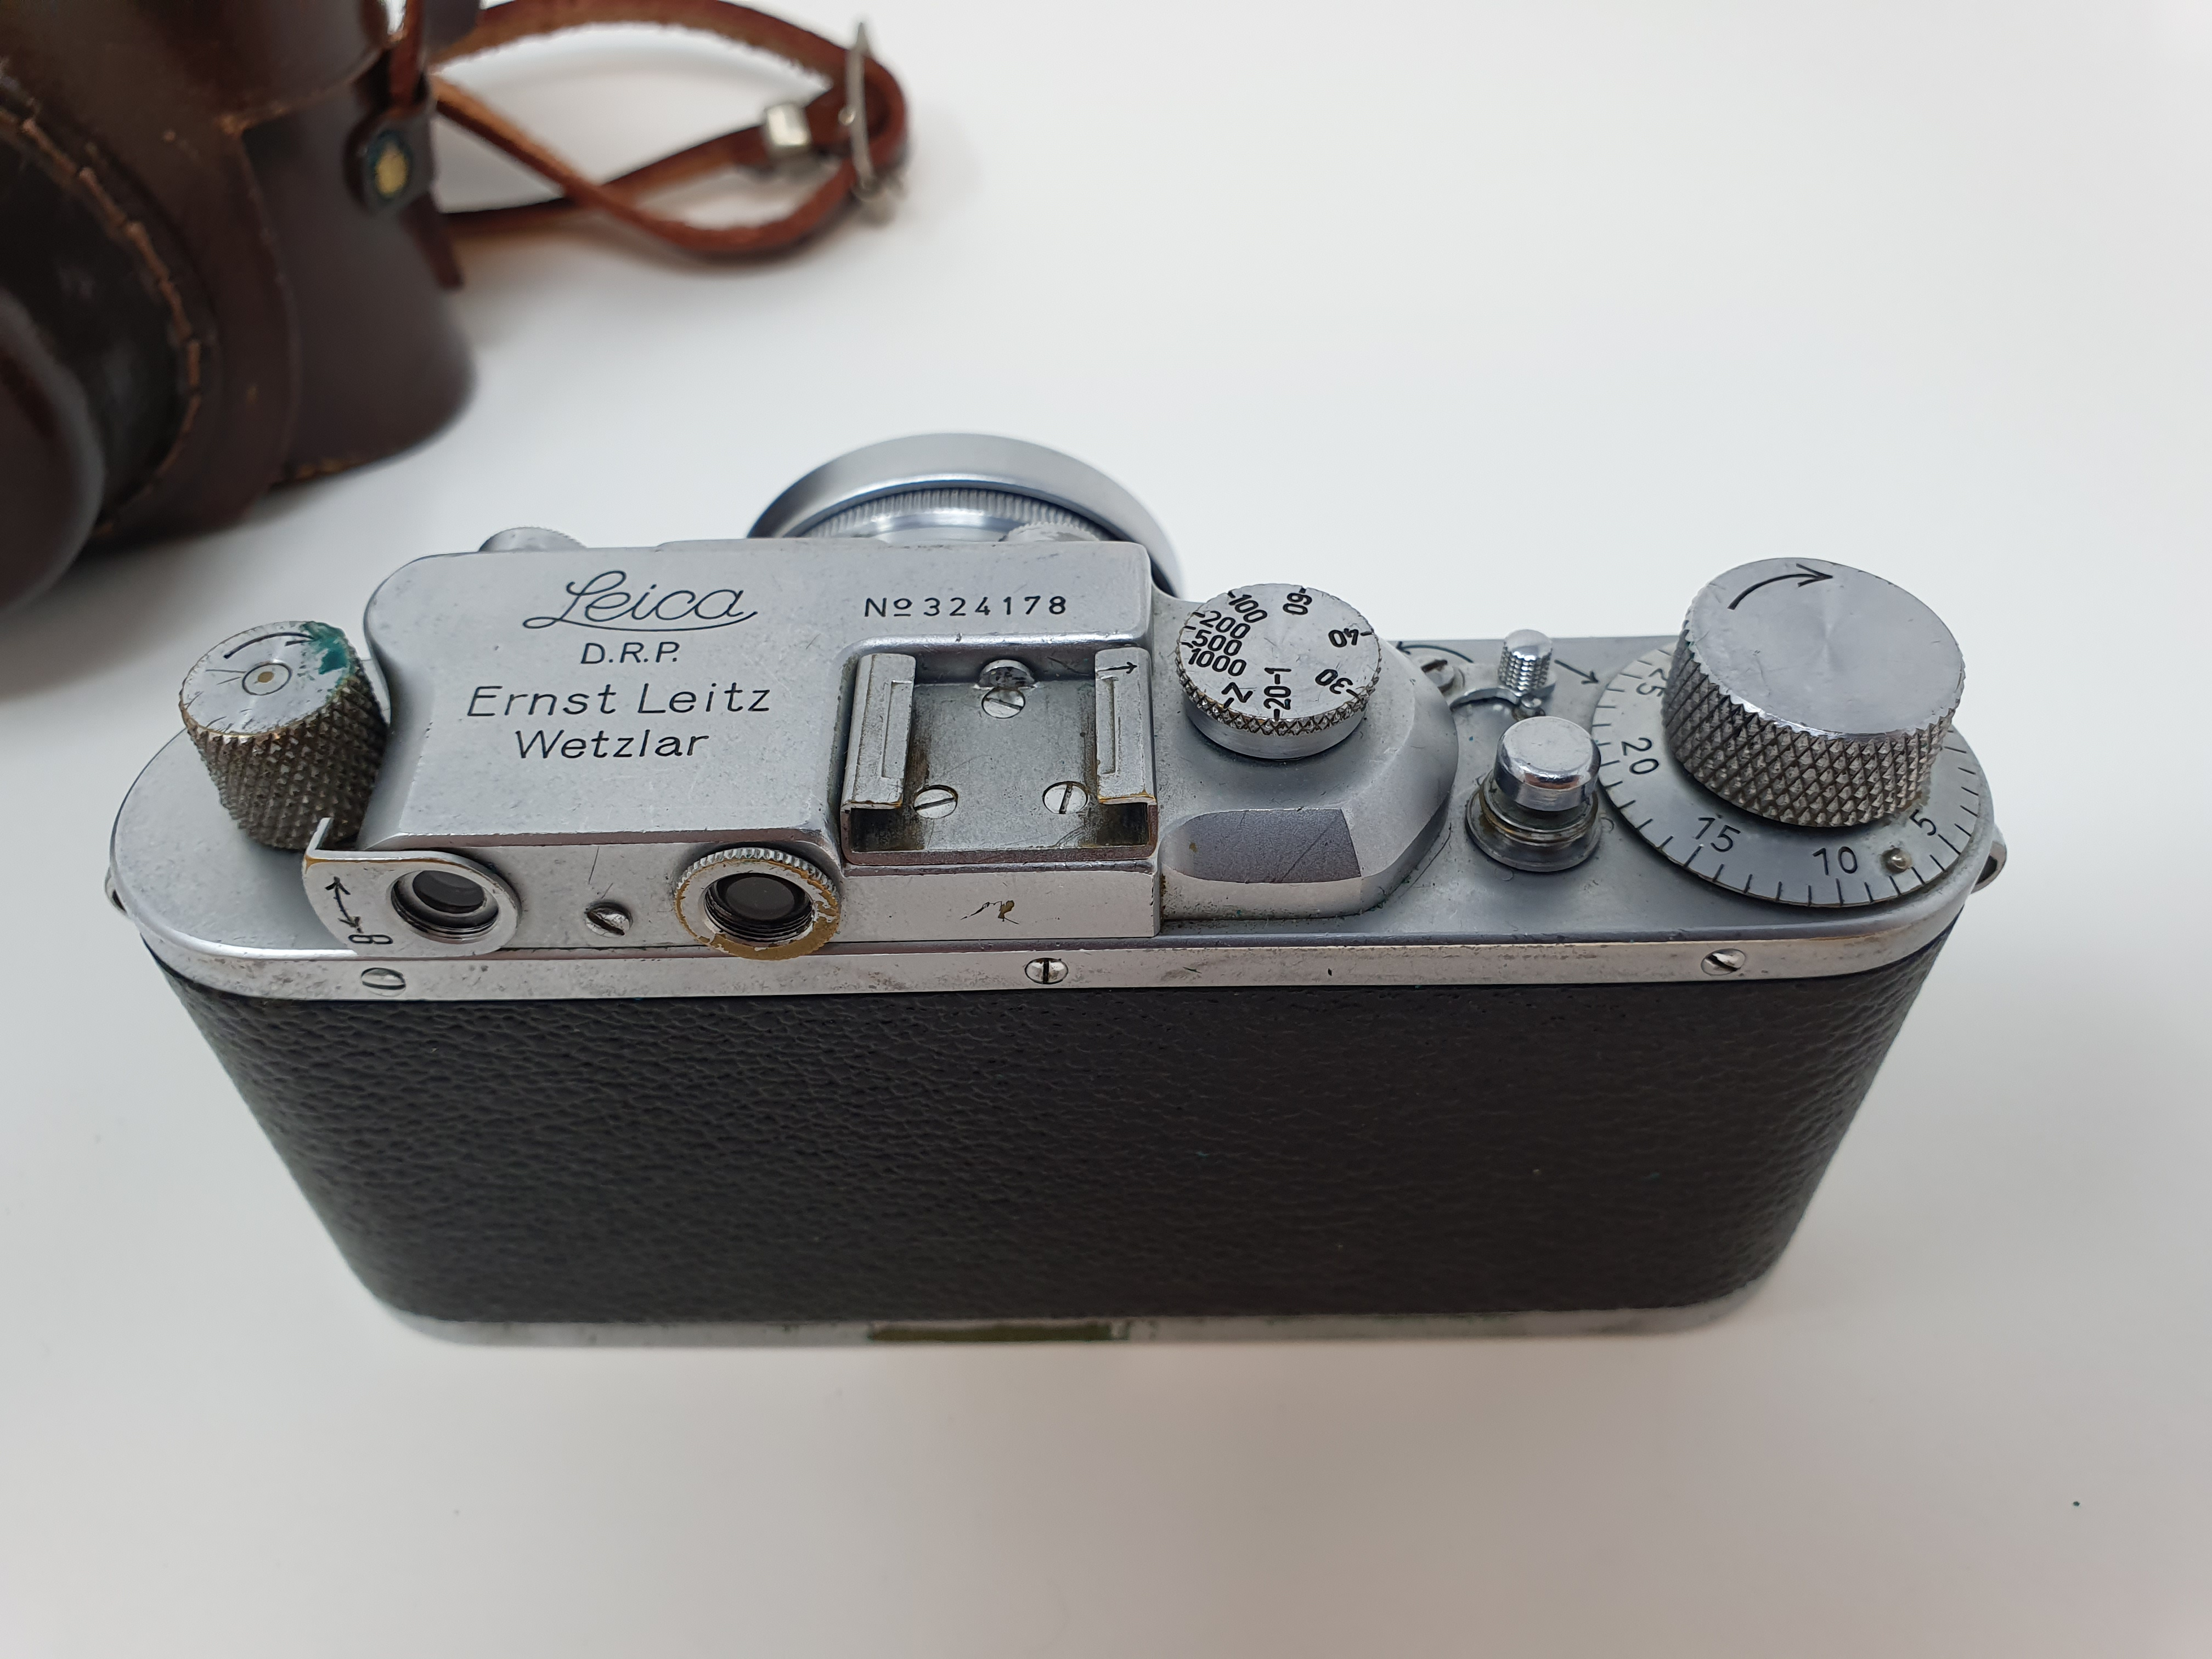 A Leica IIIa camera, serial number 324178, with leather outer case Provenance: Part of a vast single - Image 3 of 4